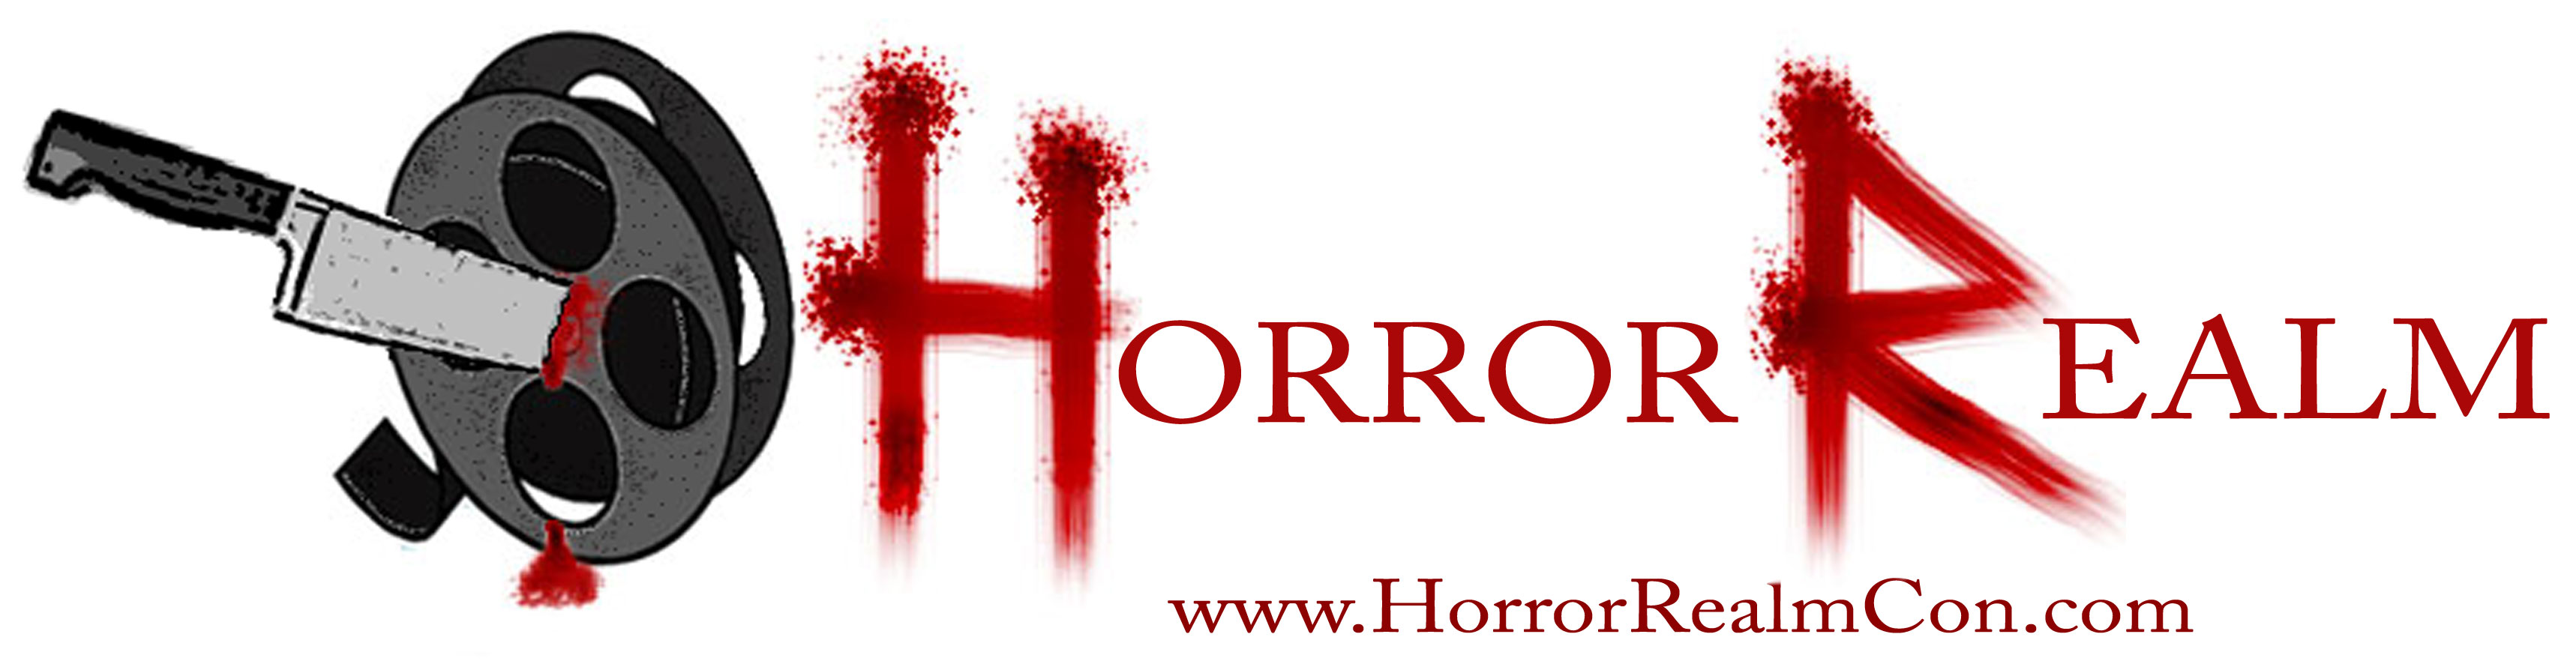 Tickets for Horror Realm 5th Anniversary Fall Convention in Pittsburgh from ShowClix